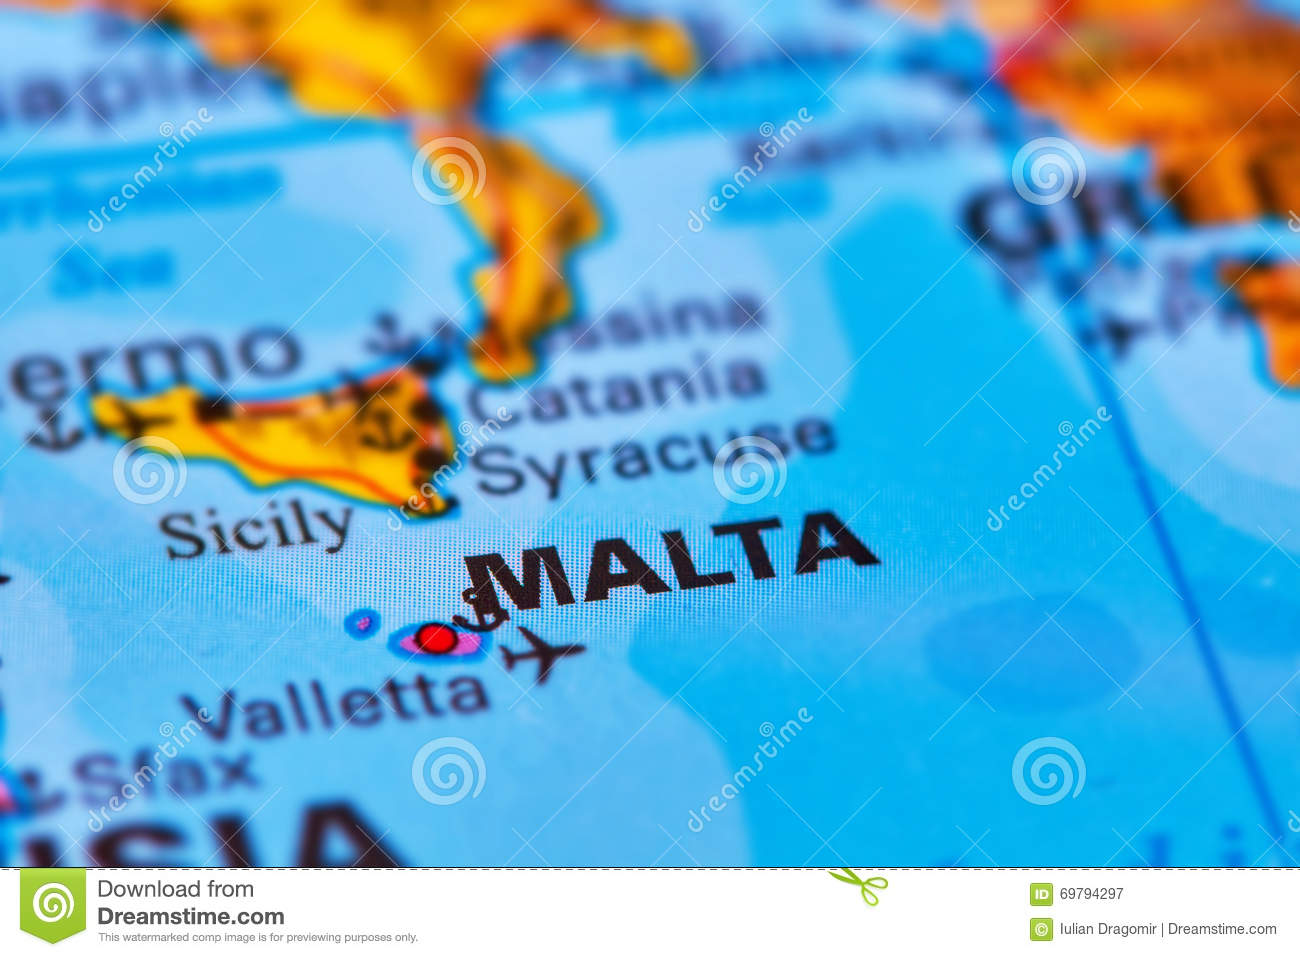 Malta Archipelago On The Map Stock Image - Image of atlas ...